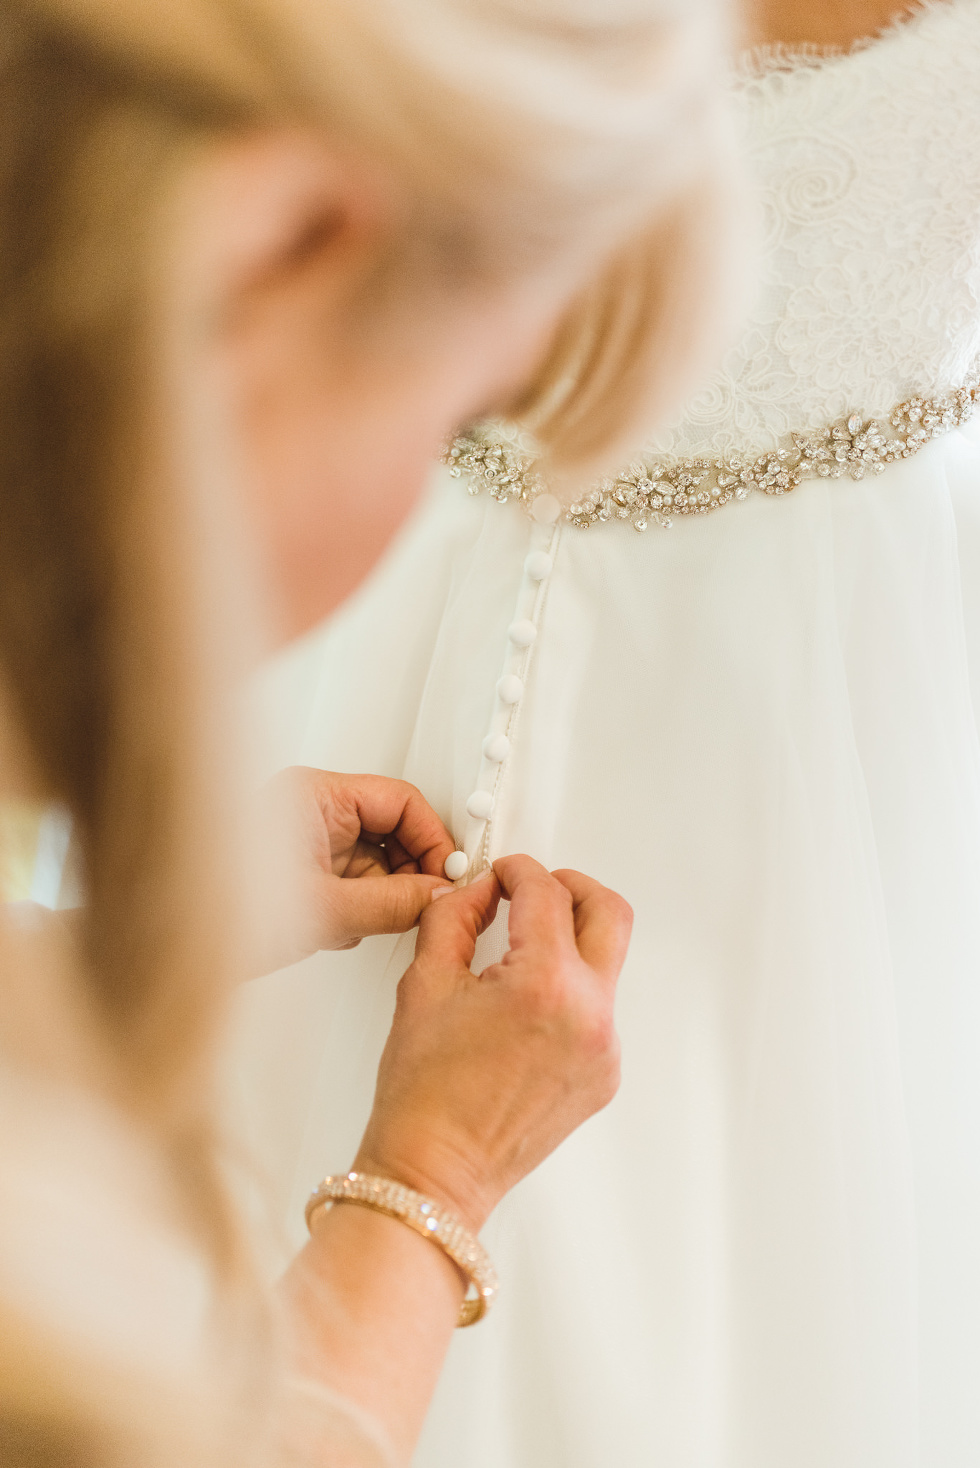 woman doing up buttons of brides white wedding dress ahead of ceremony at Now Sapphire Resort in Mexico